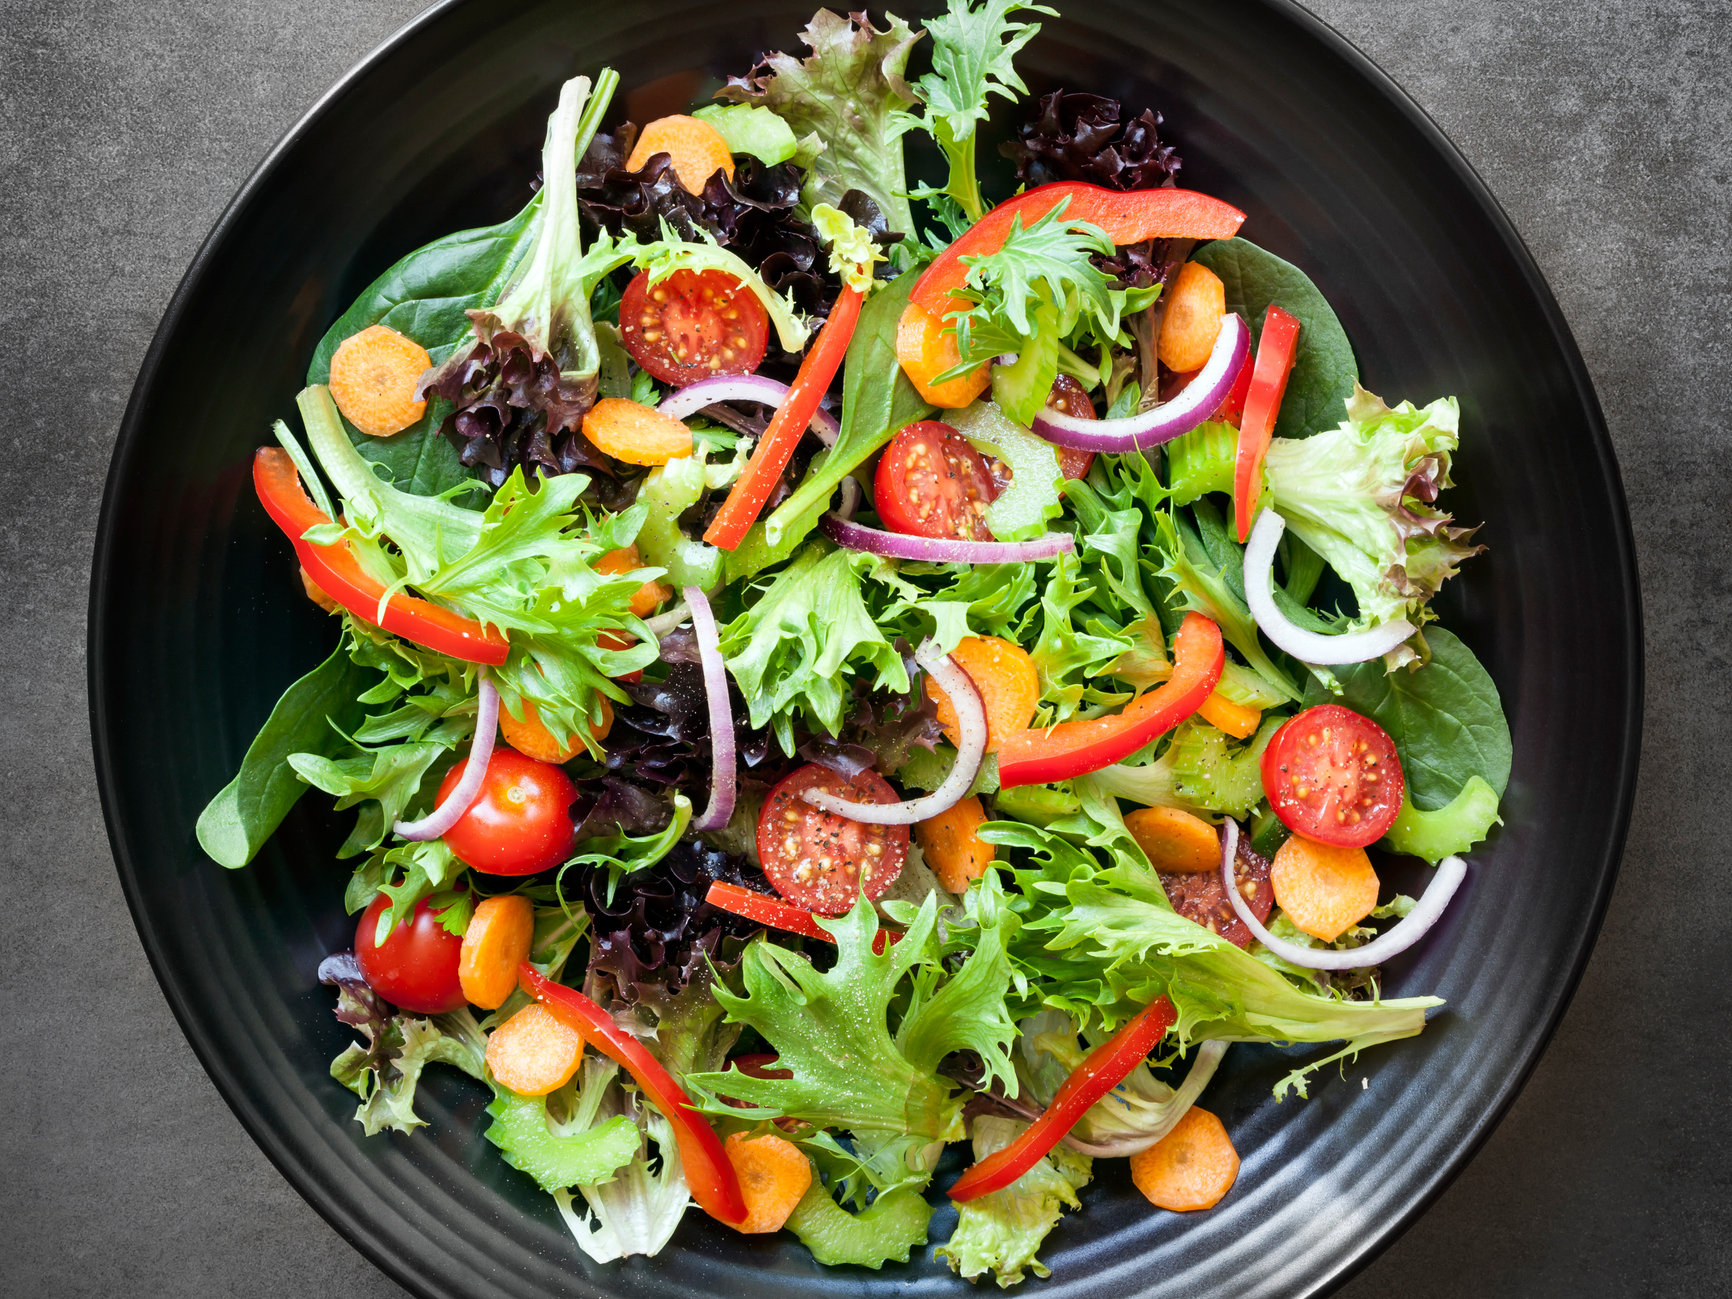 Why all the superbugs in our salad greens?